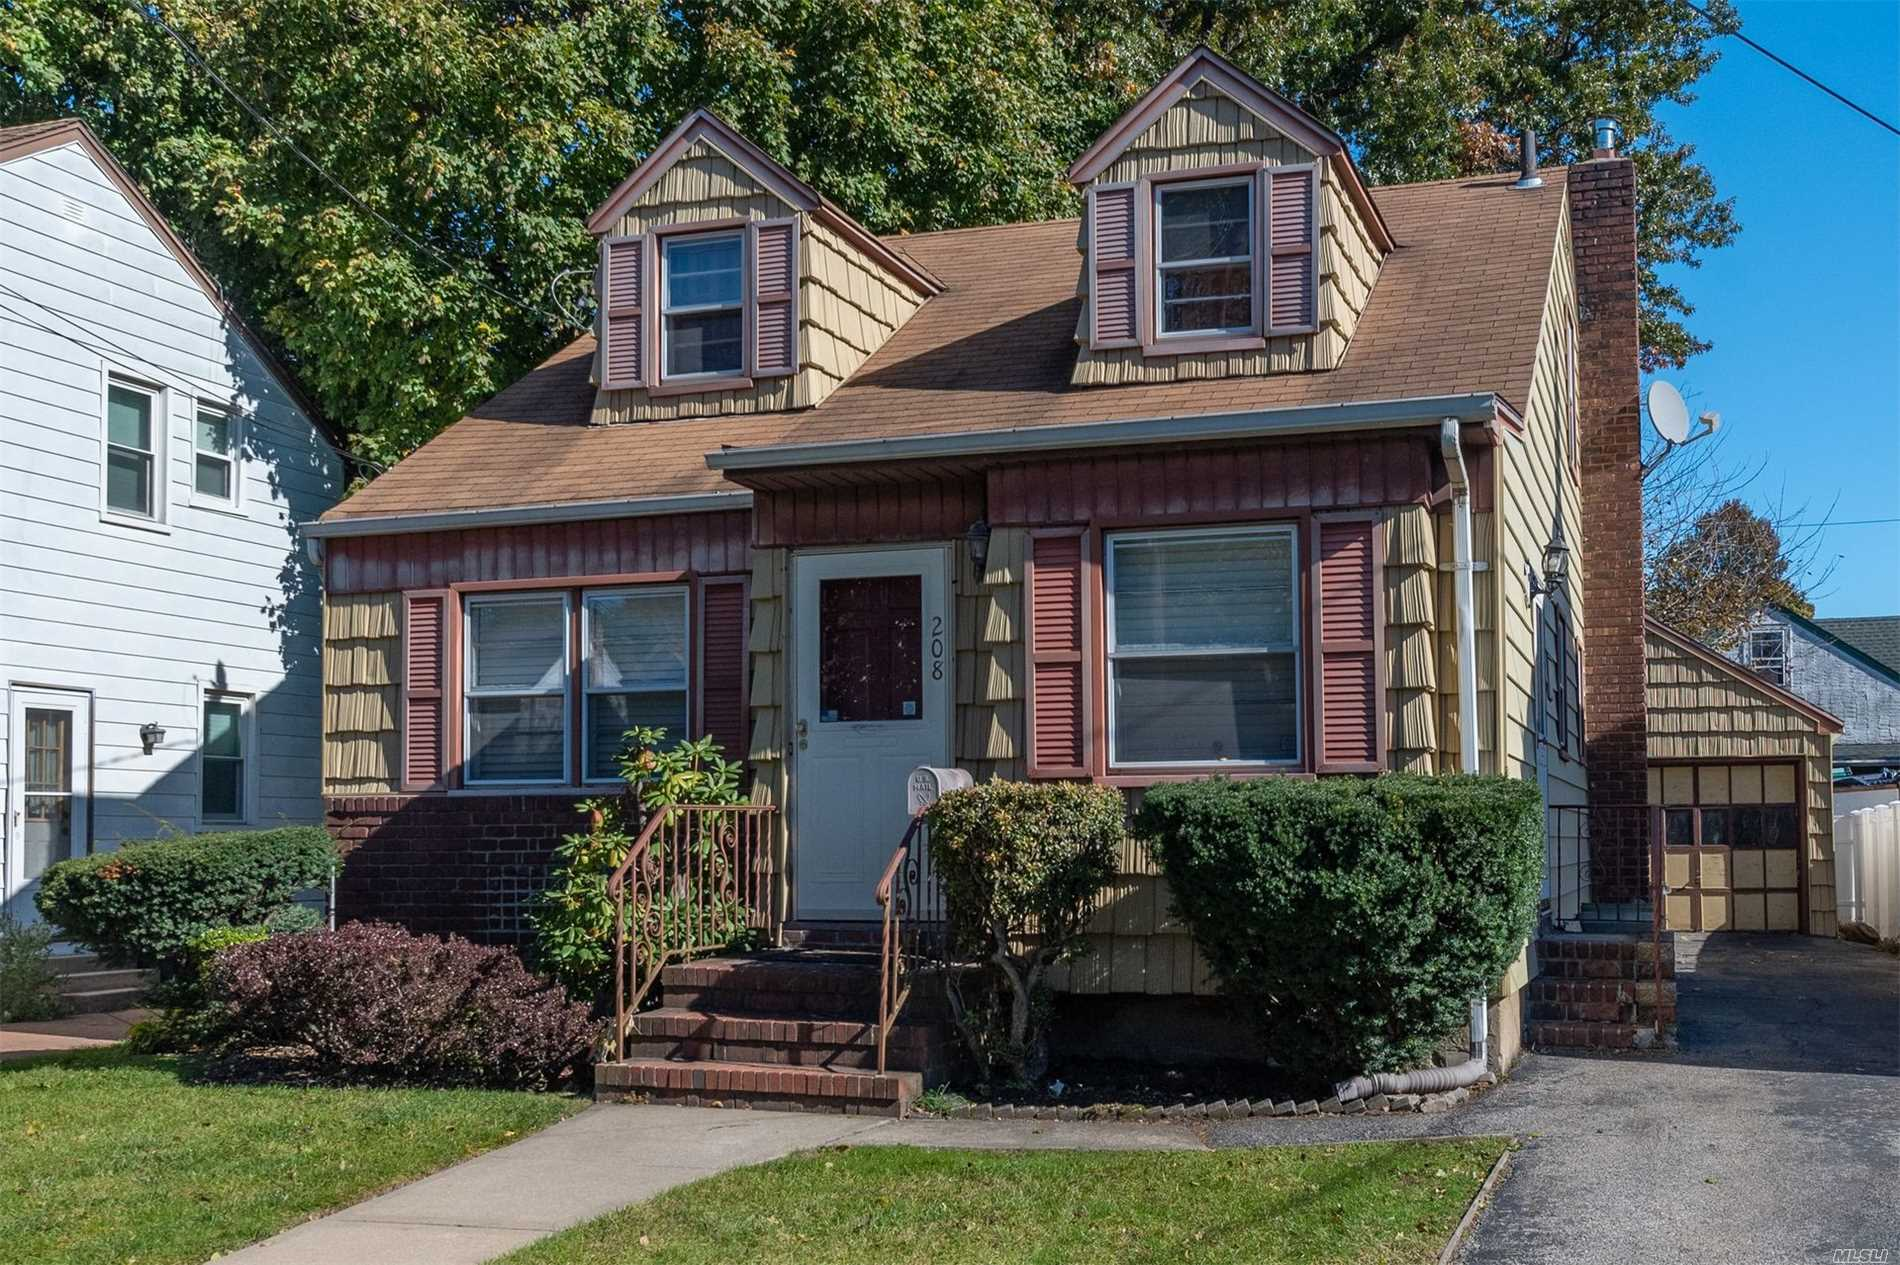 Looking For That Perfect Home In Hempstead? This Lovely 3-Br, 1-Bath Cape Has Hardwood Floors, Plenty Of Closets, And A Newly Renovated Bathroom That You And Your Family Will Be The First To Enjoy! This House Is In The Uniondale's School District. This Could Be The One That You And Your Family Could Grow And Create Plenty Of Memories. Visit This Home To Feel The Love That You're Looking For.